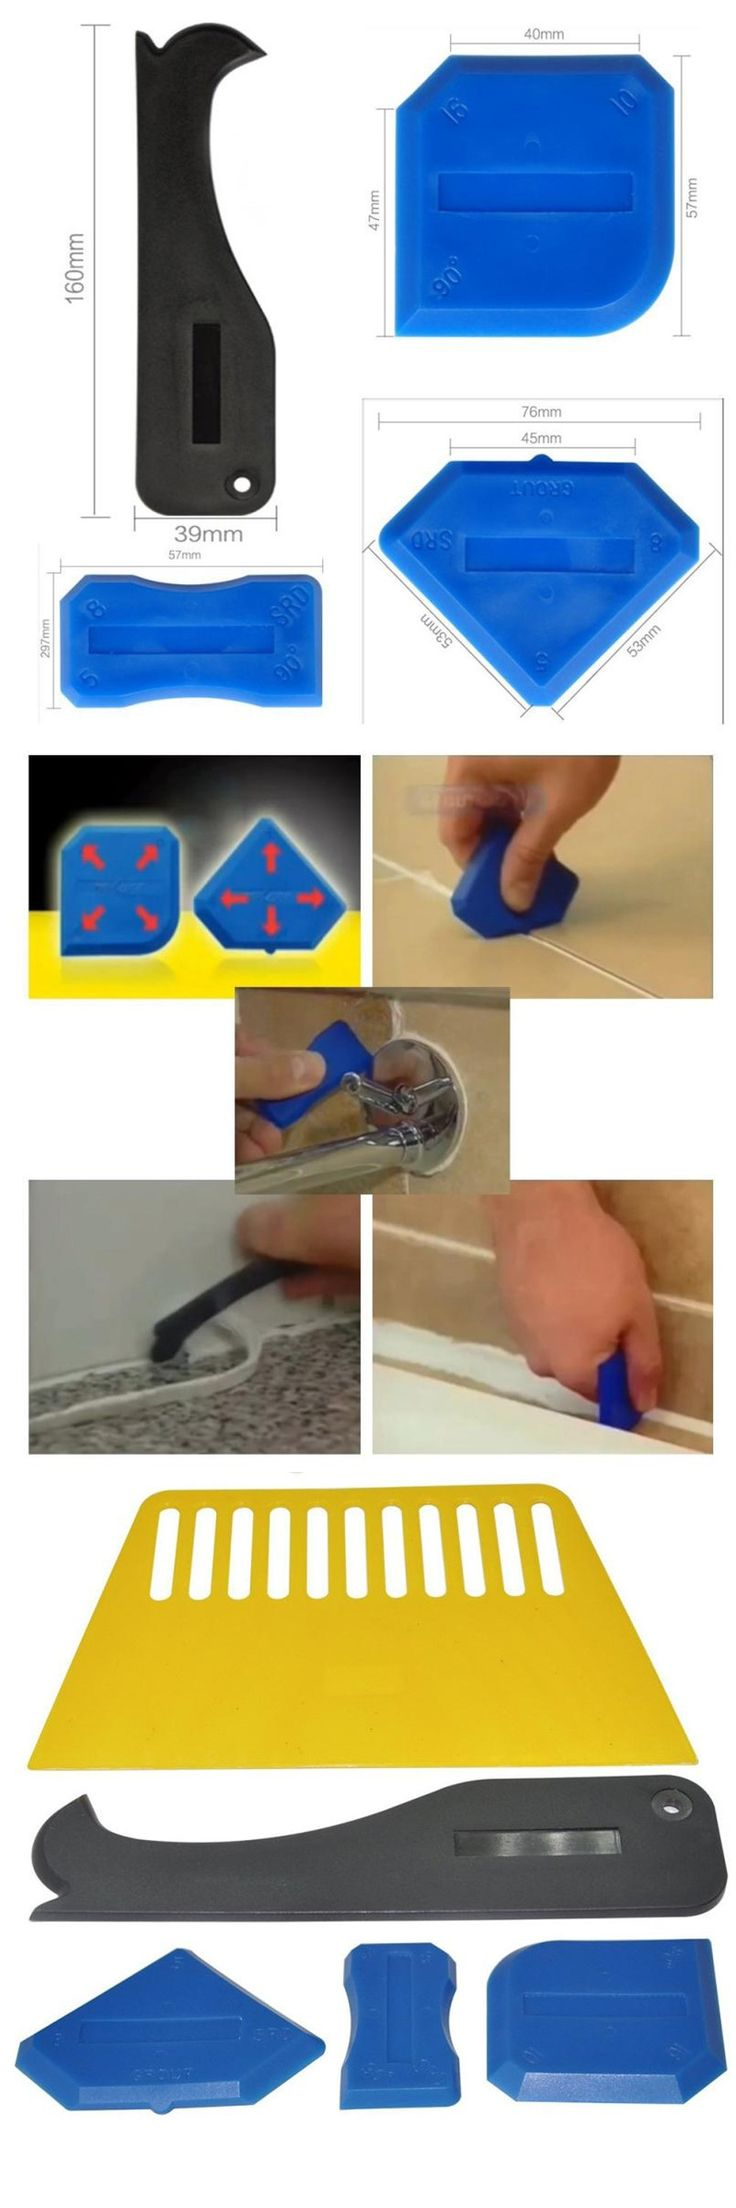 Best 25 sealant removers ideas on pinterest clean black mold 5pcsset silicone sealant spreader spatula scraper cement caulk removal tool household cleaning scraping cleaner nvjuhfo Choice Image